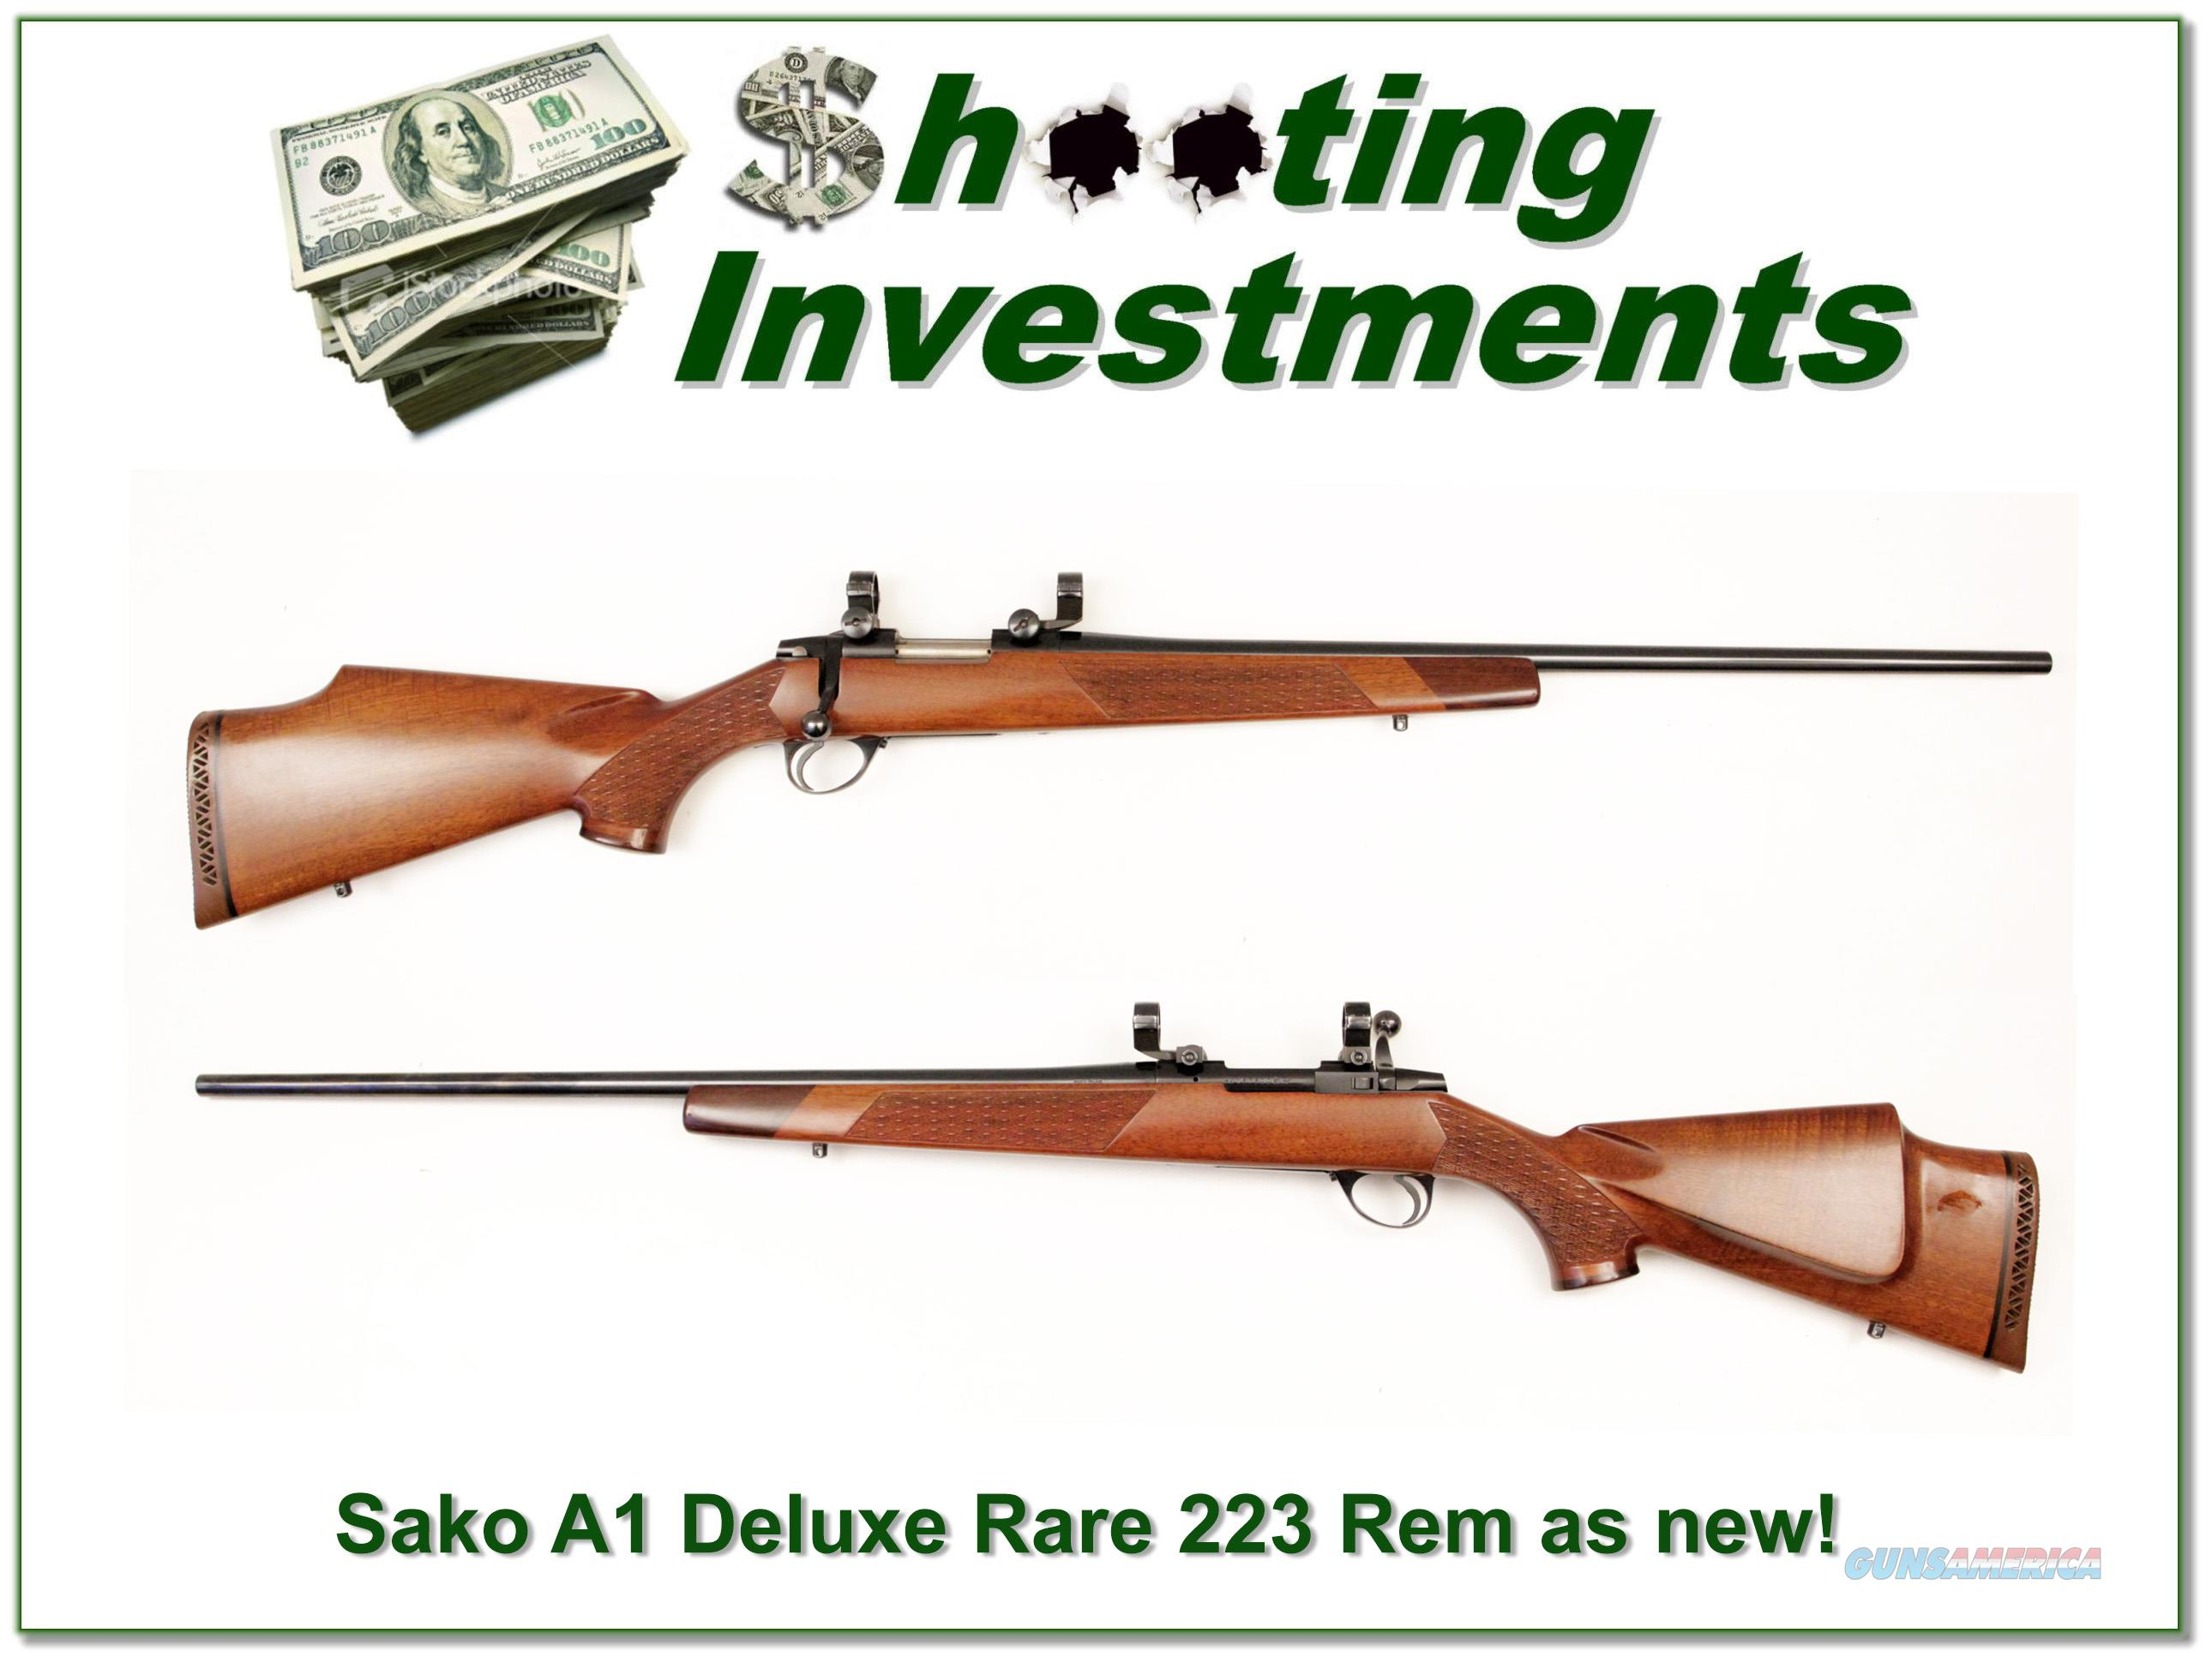 Sako A1 Deluxe in RARE 223 Remington as new!  Guns > Rifles > Sako Rifles > Other Bolt Action